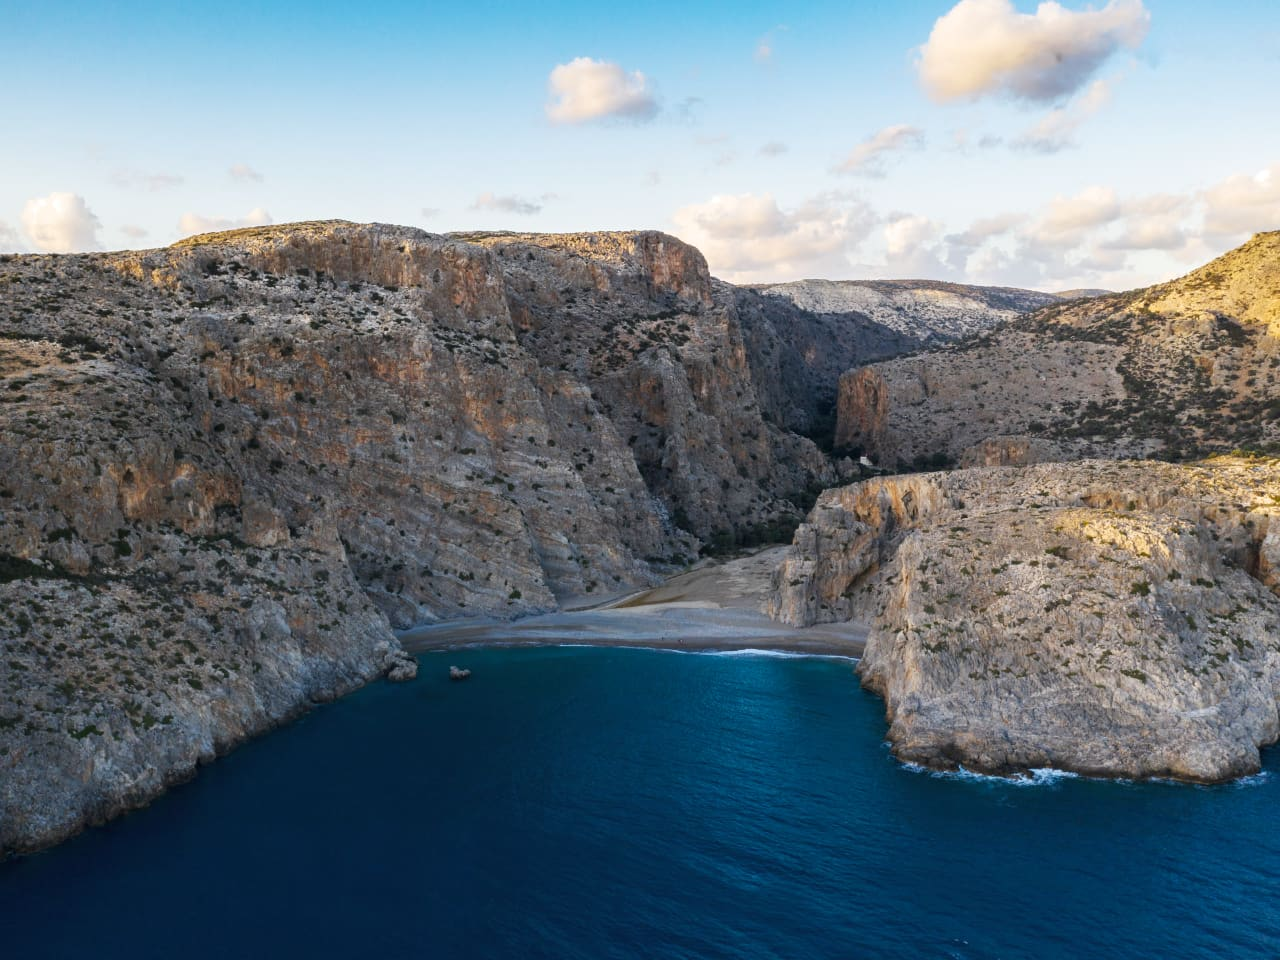 3 day rock climbing agiofaraggo Crete, agiofarago crete climbing, activities crete, south heraklion activity climbing, multi day climbing activity crete, best things to do crete, the crete you are looking for